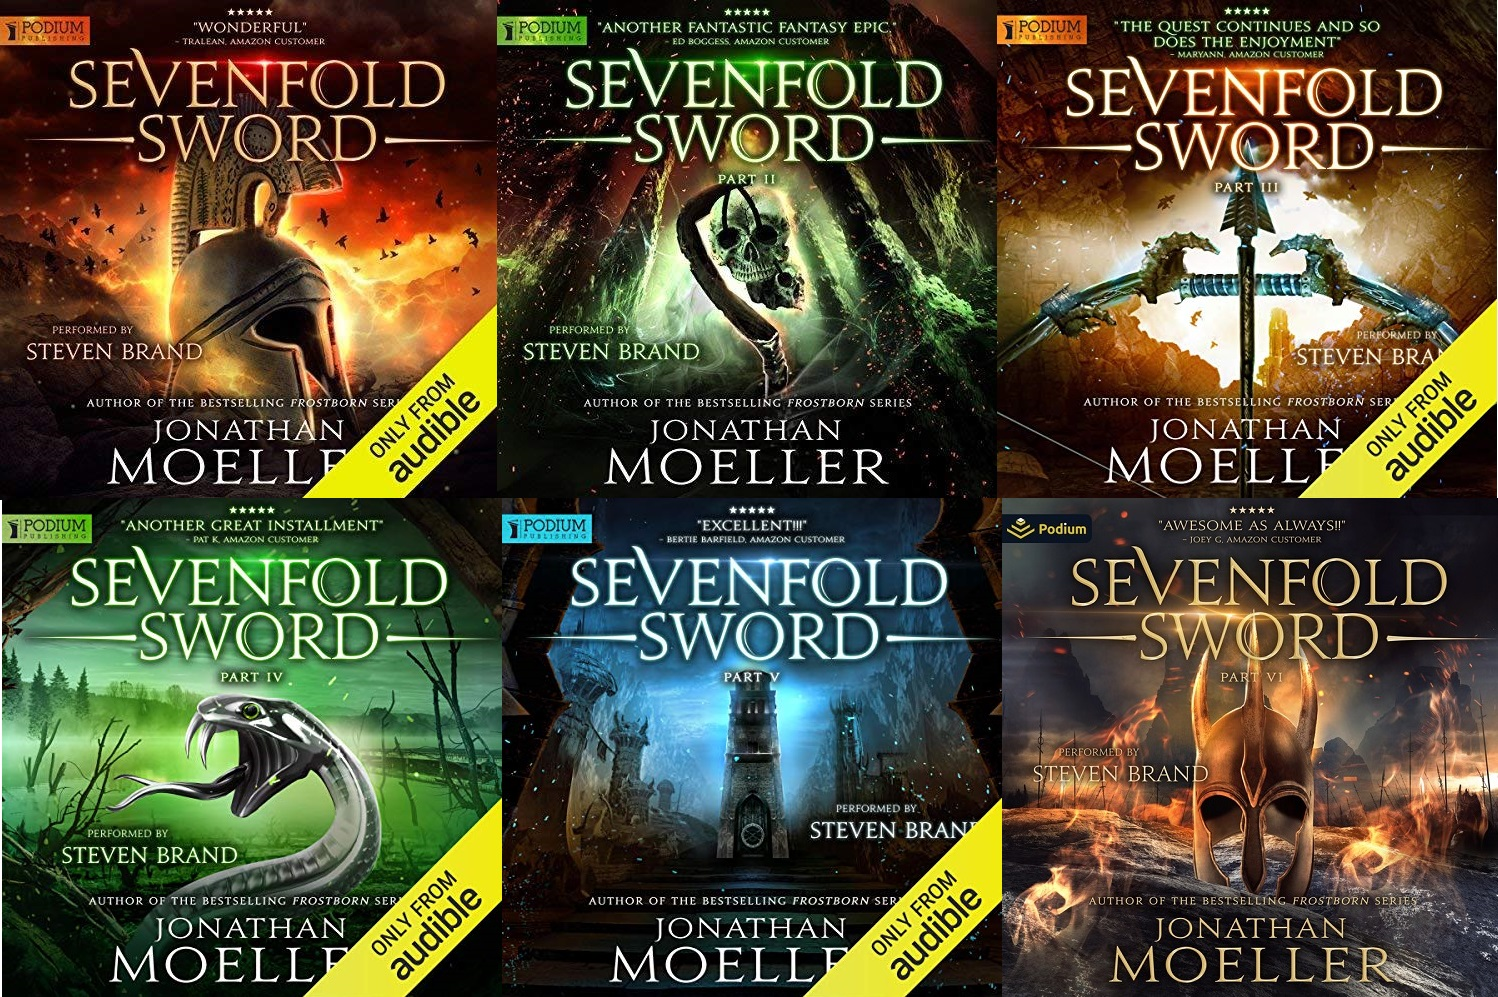 Sevenfold Sword Series Book 1-12 - Jonathan Moeller